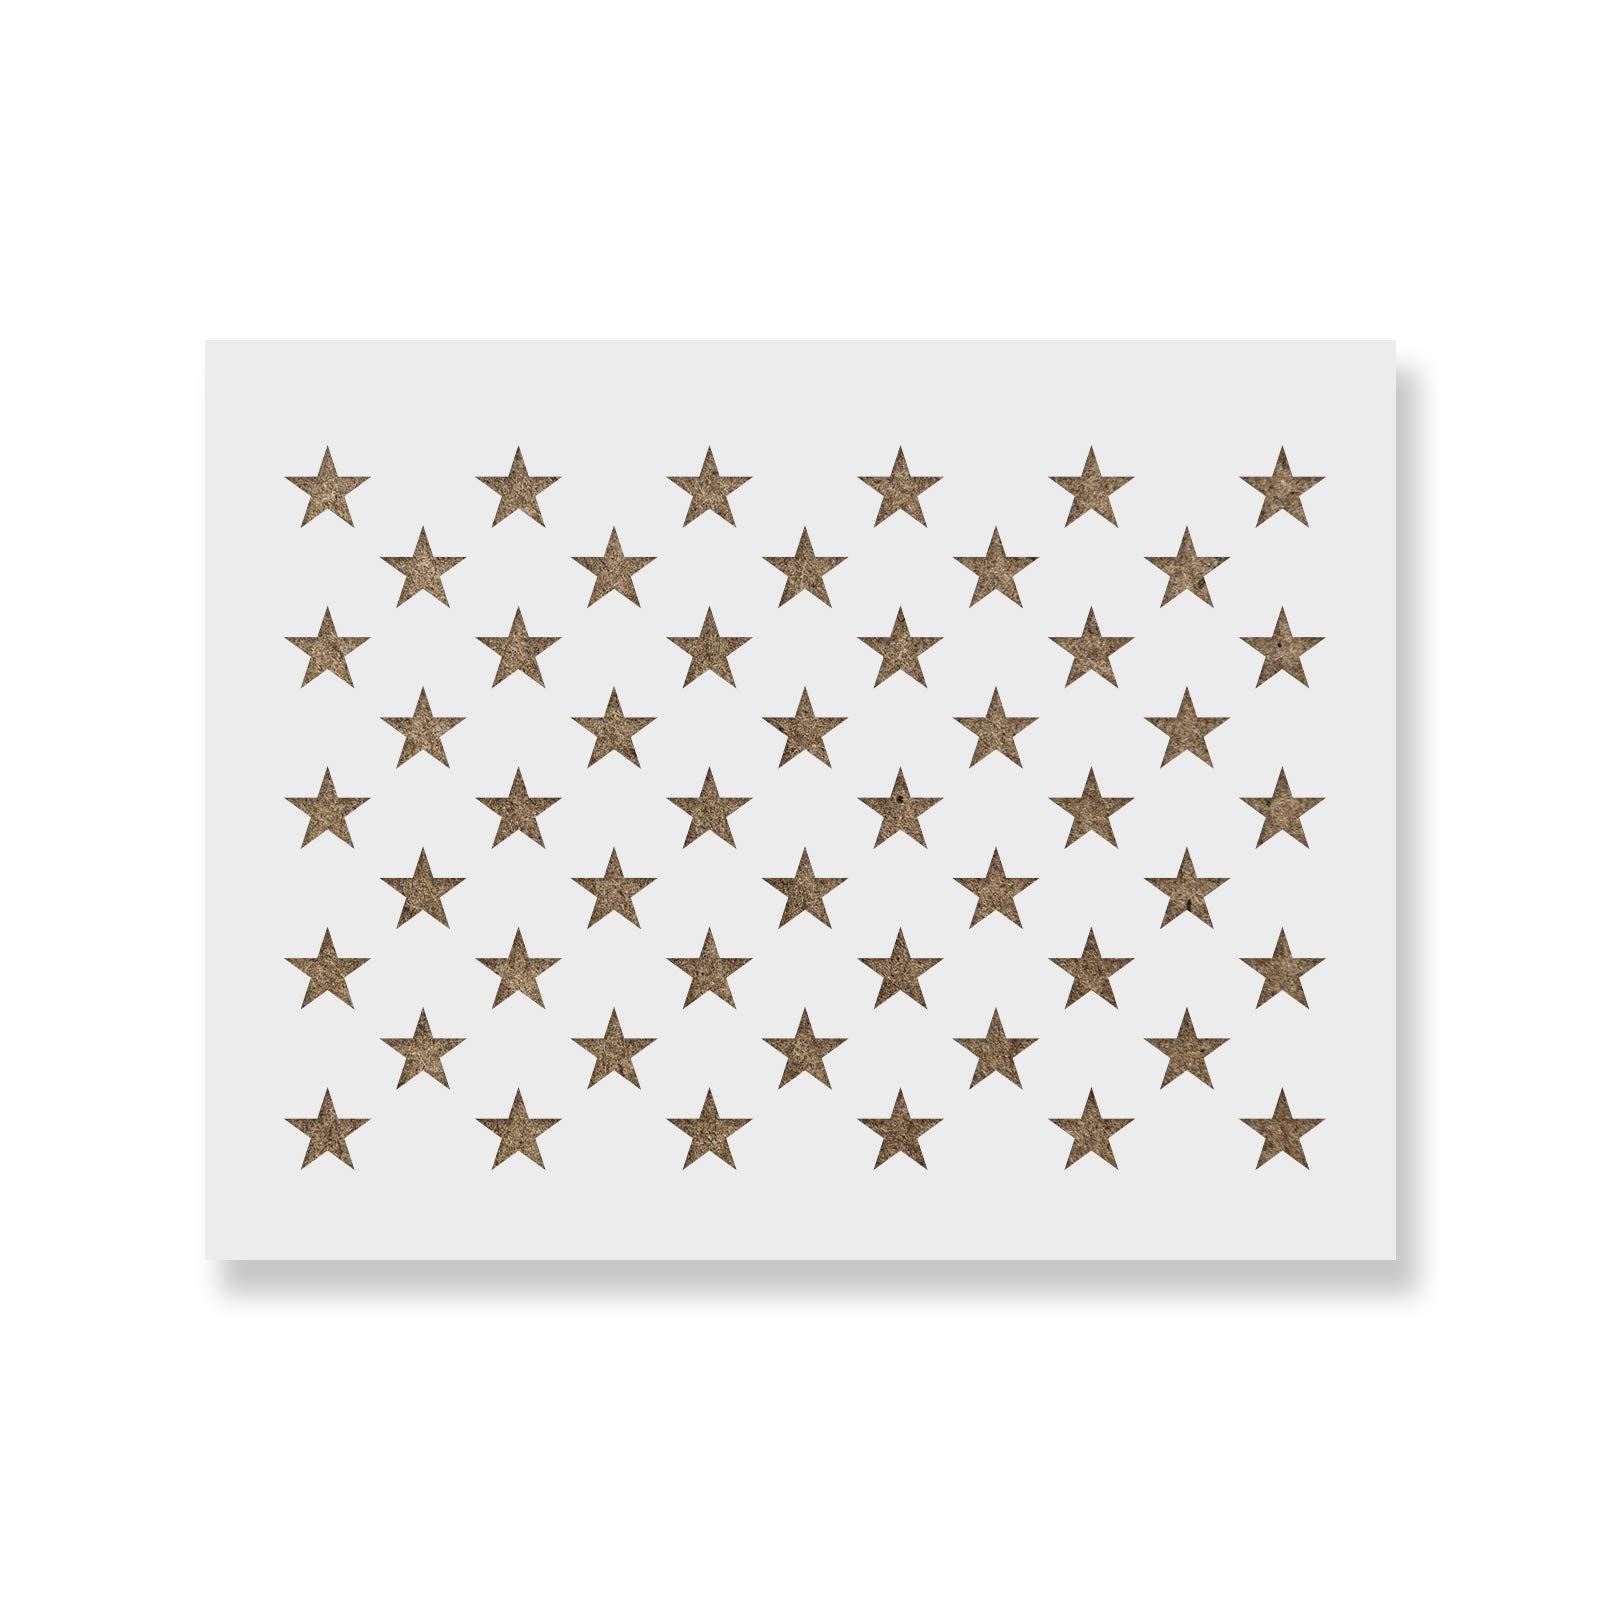 50 Stars Stencil Template - Reusable Stencil of American Flag 50 Stars in Official US Proportions (Actual Dimensions 32.1'' Width x 22.3'' Height)